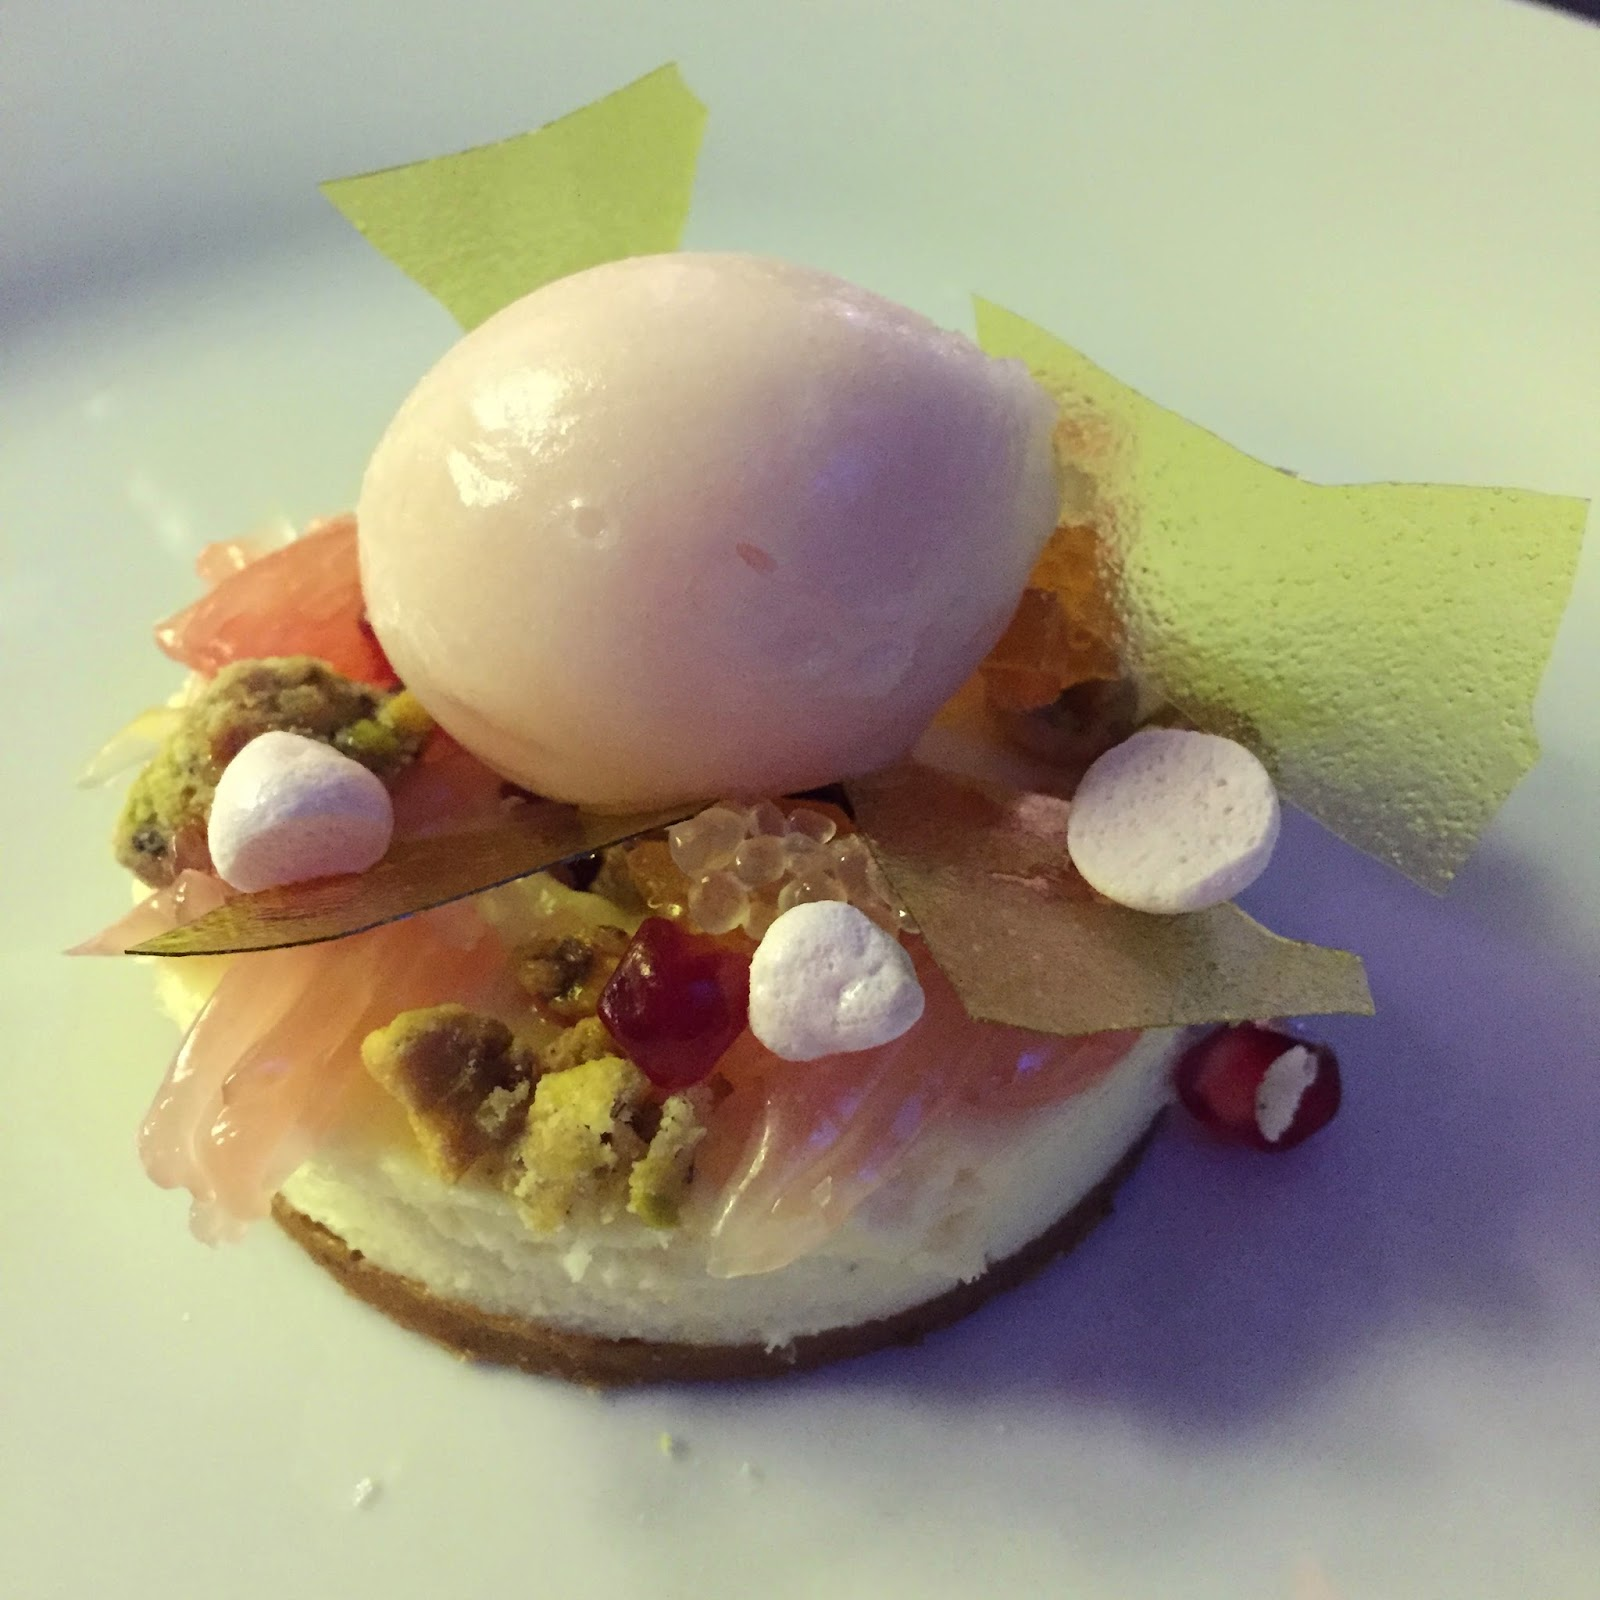 White chocolate cheesecake with pomelo, pomegranate, brown butter, and pistachio